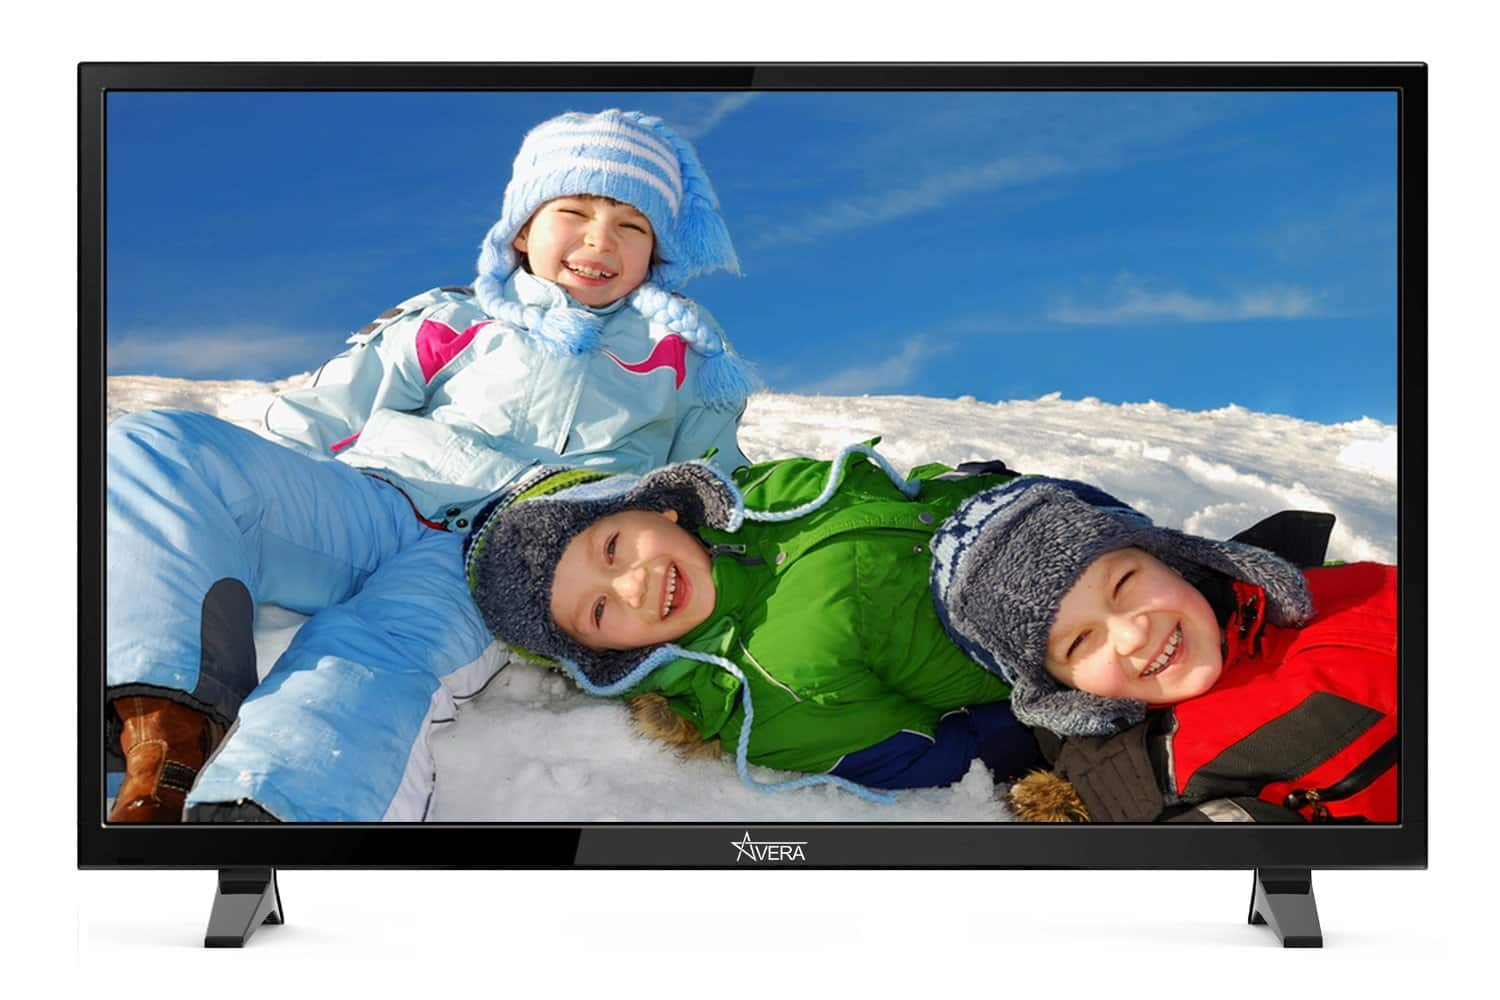 """32"""" Avera 720p TV $75, live on Amazon in ~3 minutes (for prime members)"""